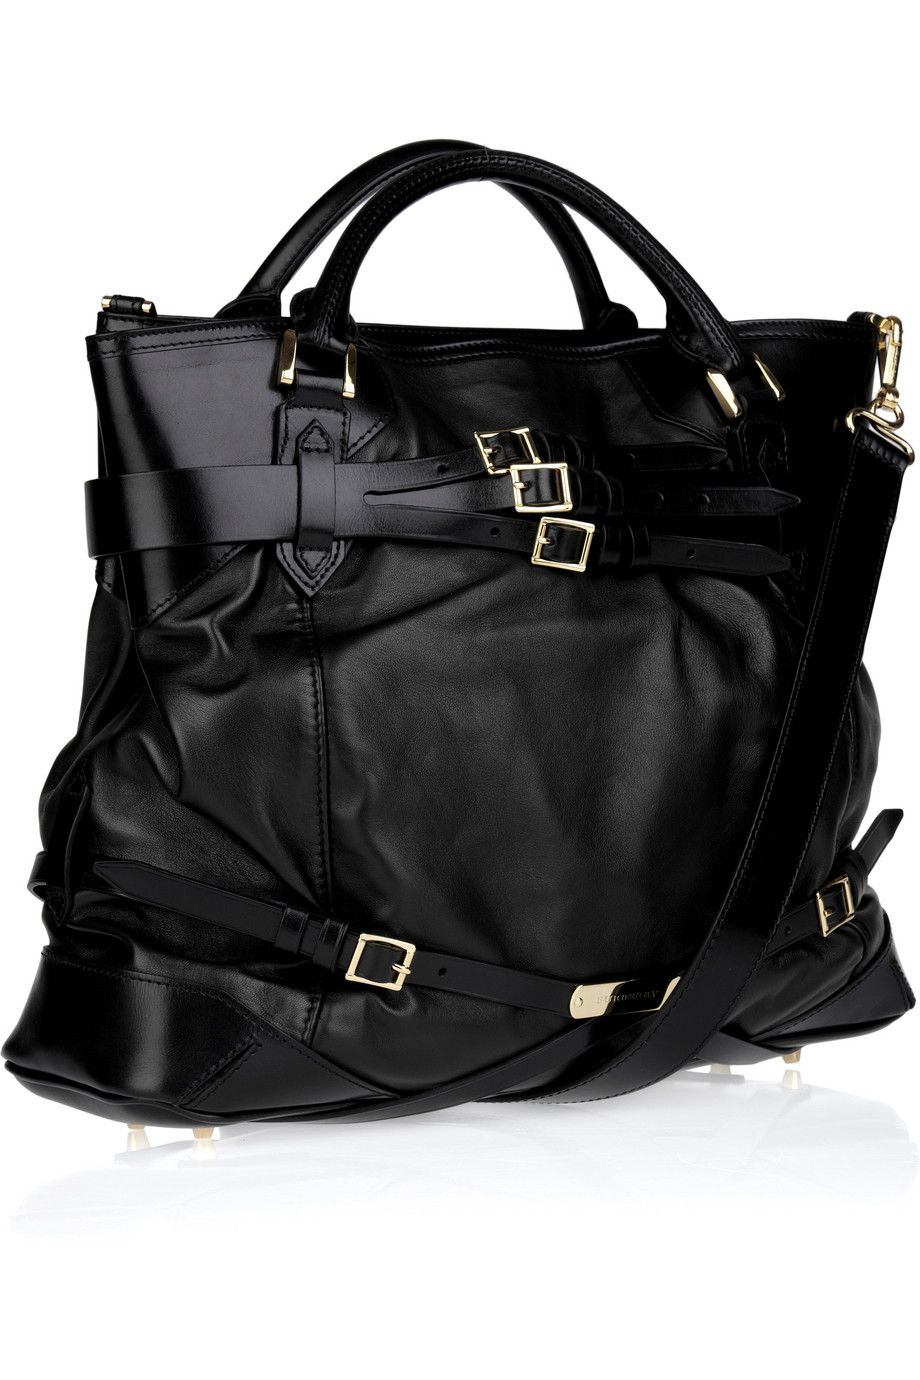 402bed37ff9e Burberry Buckle-detailed Leather Tote in Black